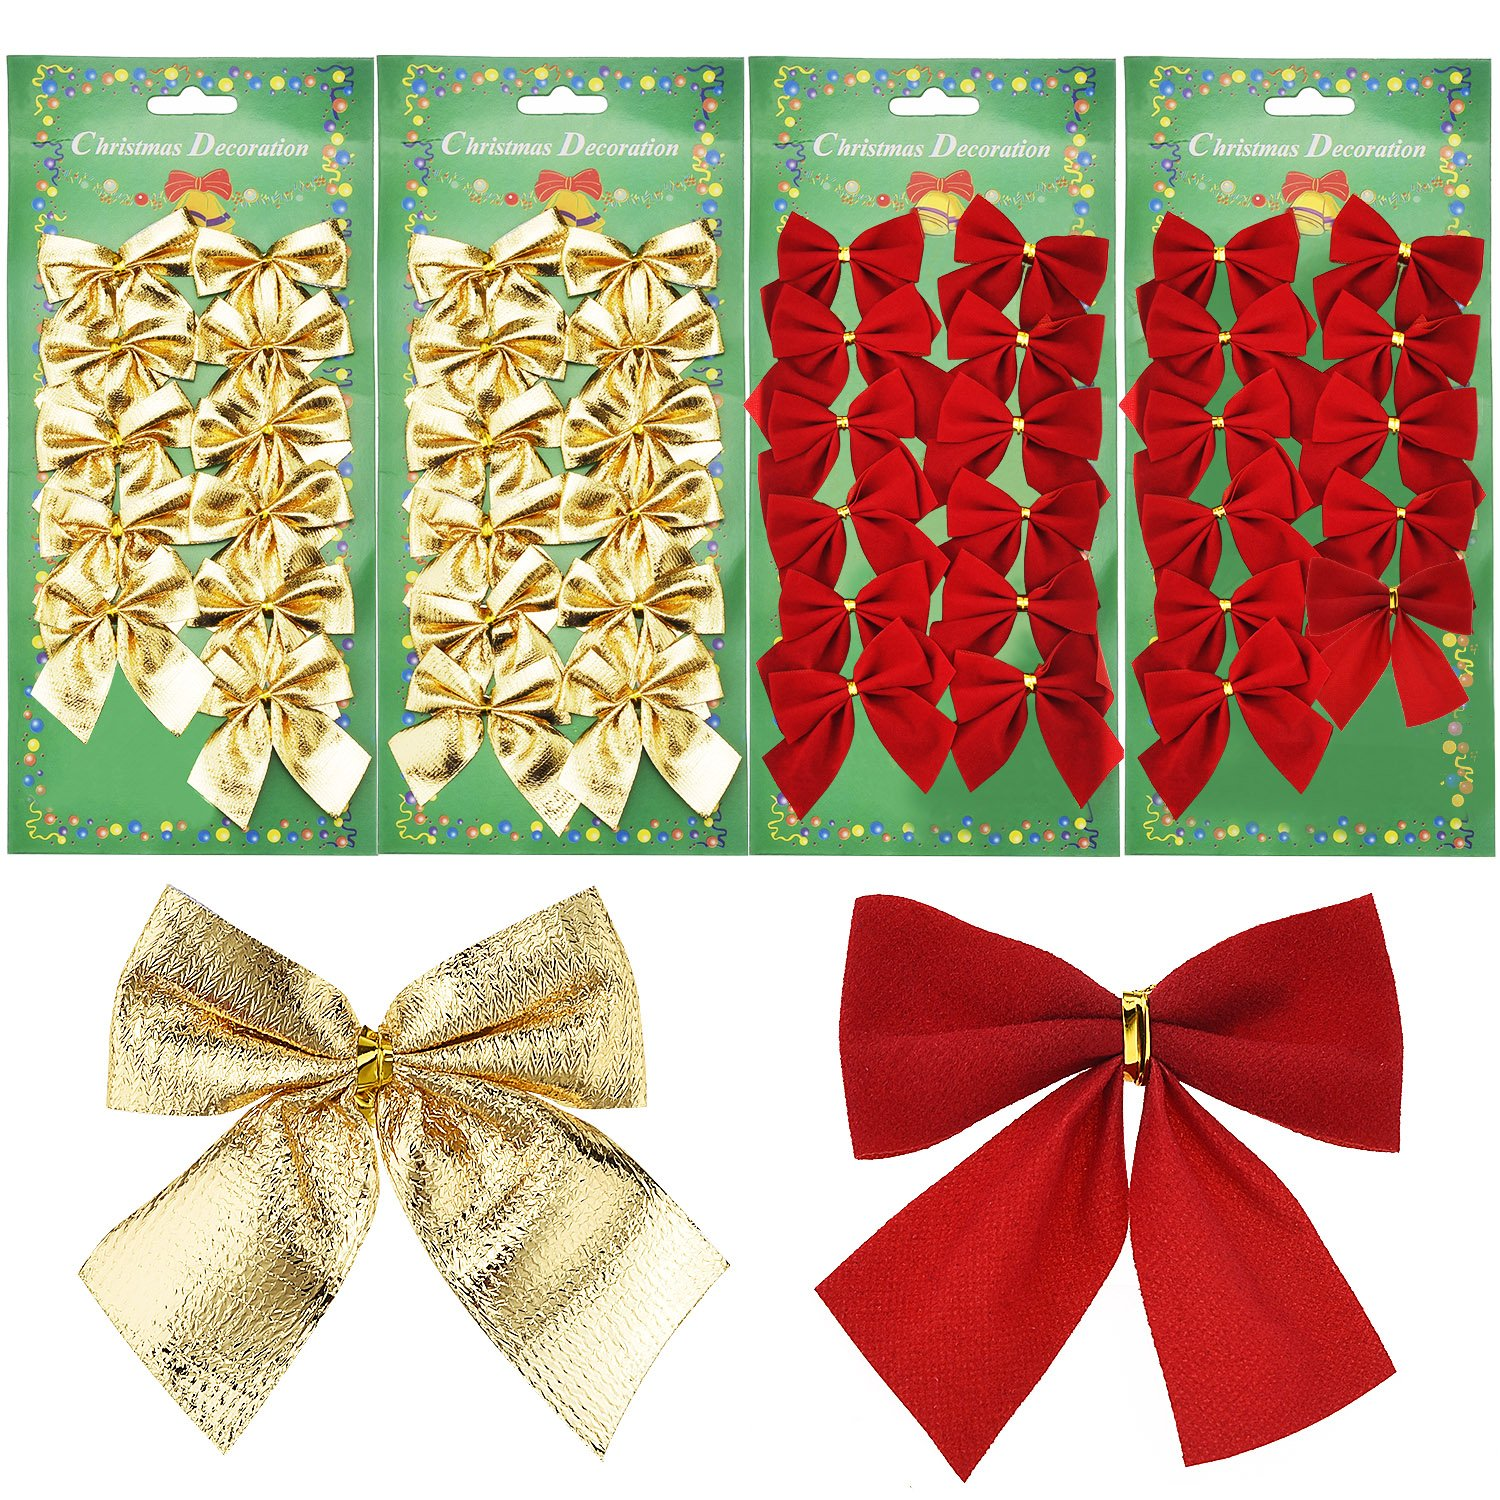 48 Pieces Festival Bow Decorations Christmas Ribbon Bows Ornaments